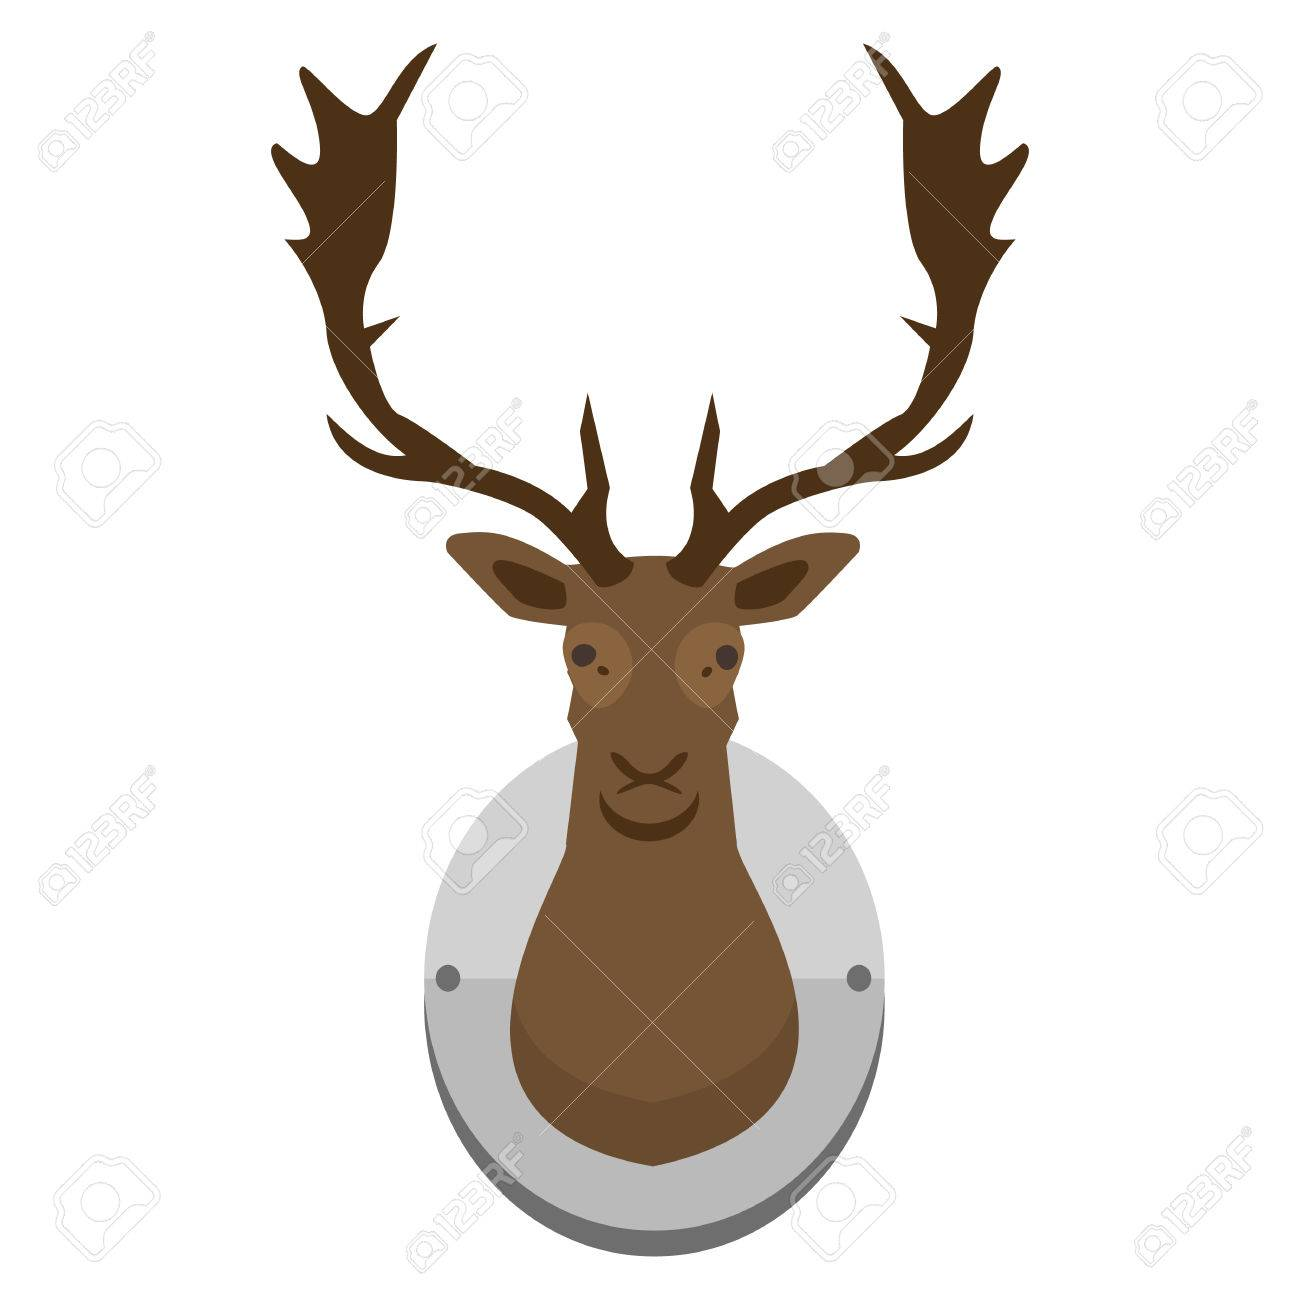 Free download clip art. Hunting clipart antelope head